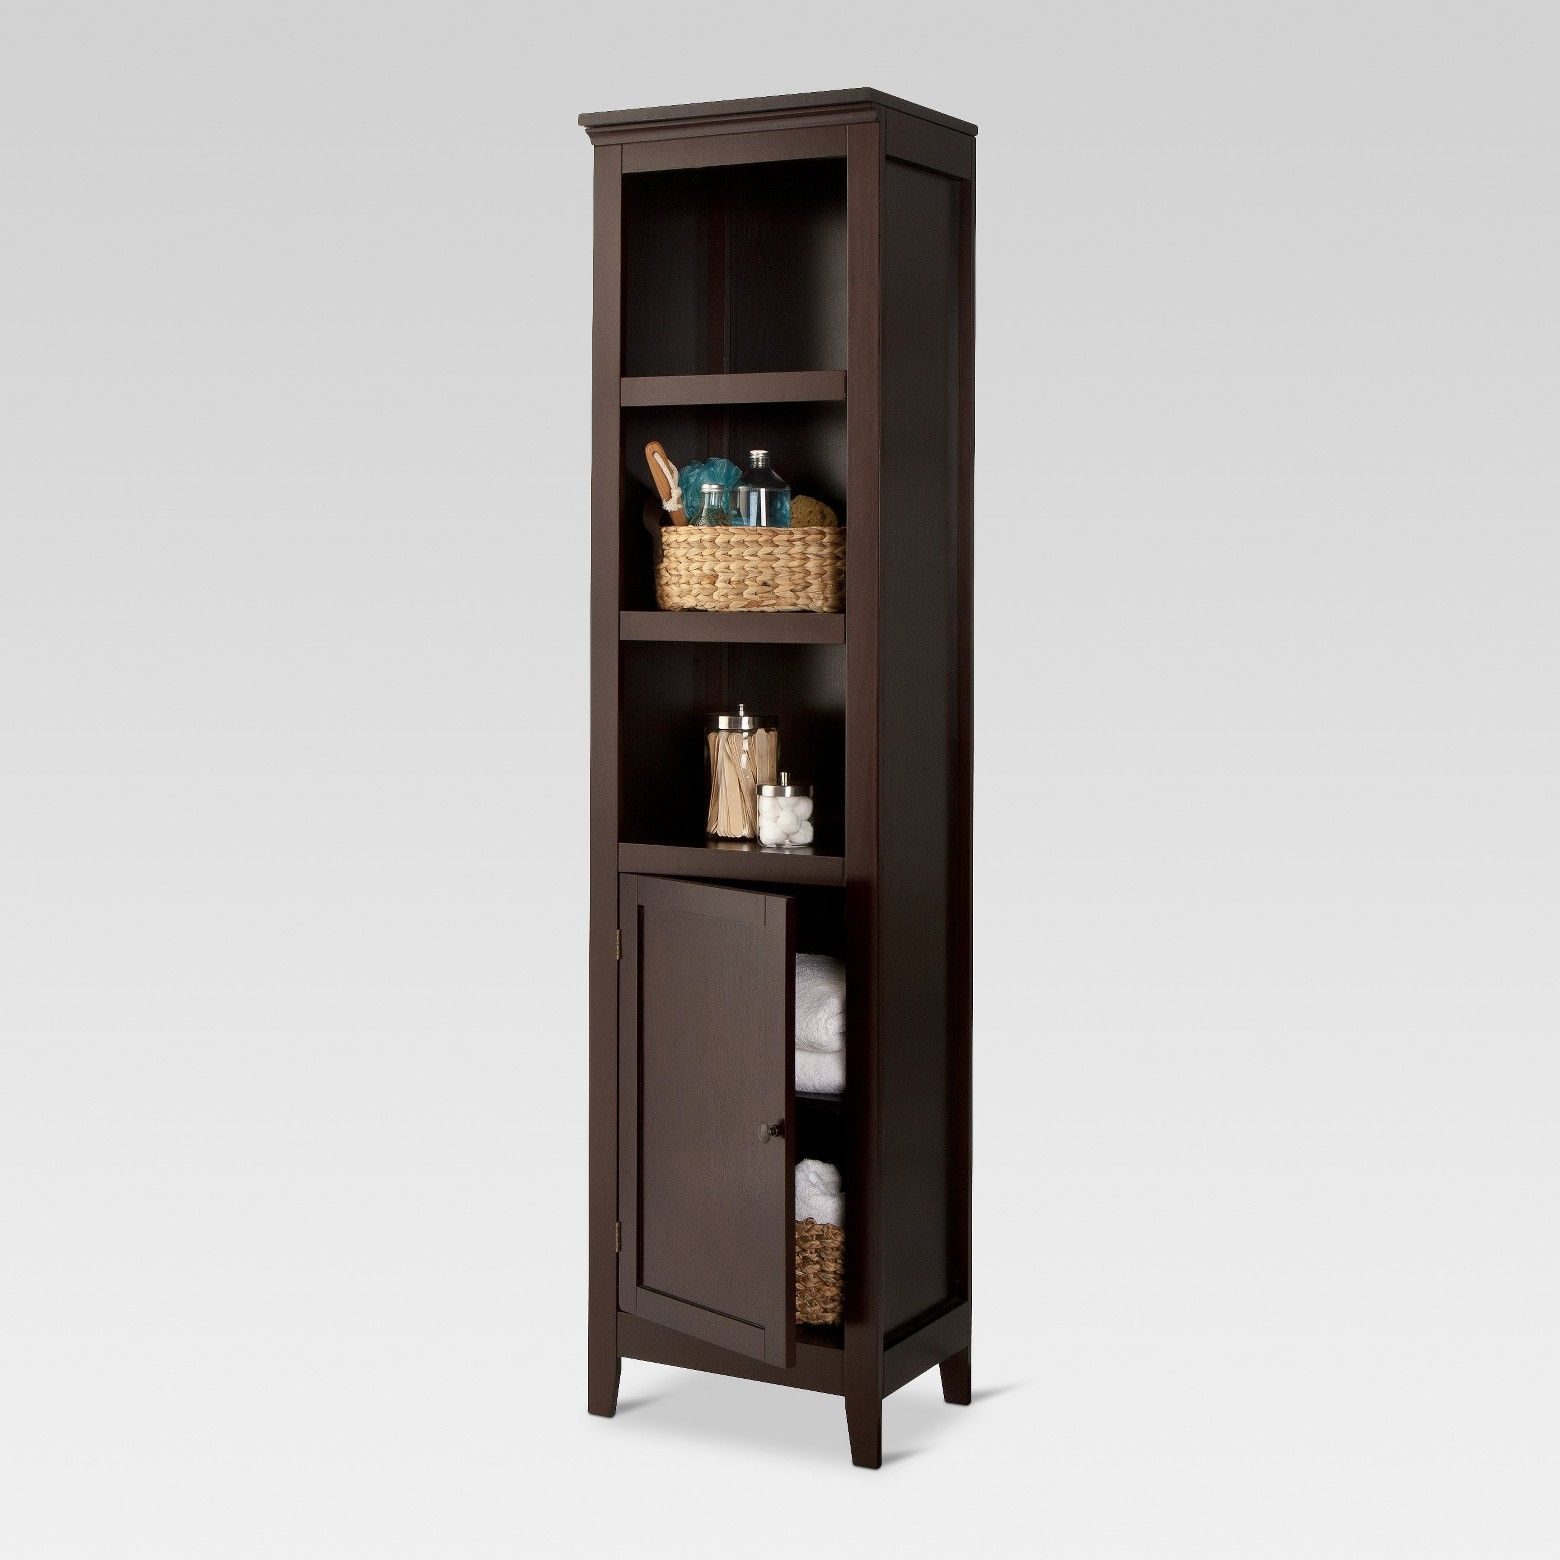 doors make with bookcases small bookcase design american for grown horizontal hwy furniture sew ideas narrow house